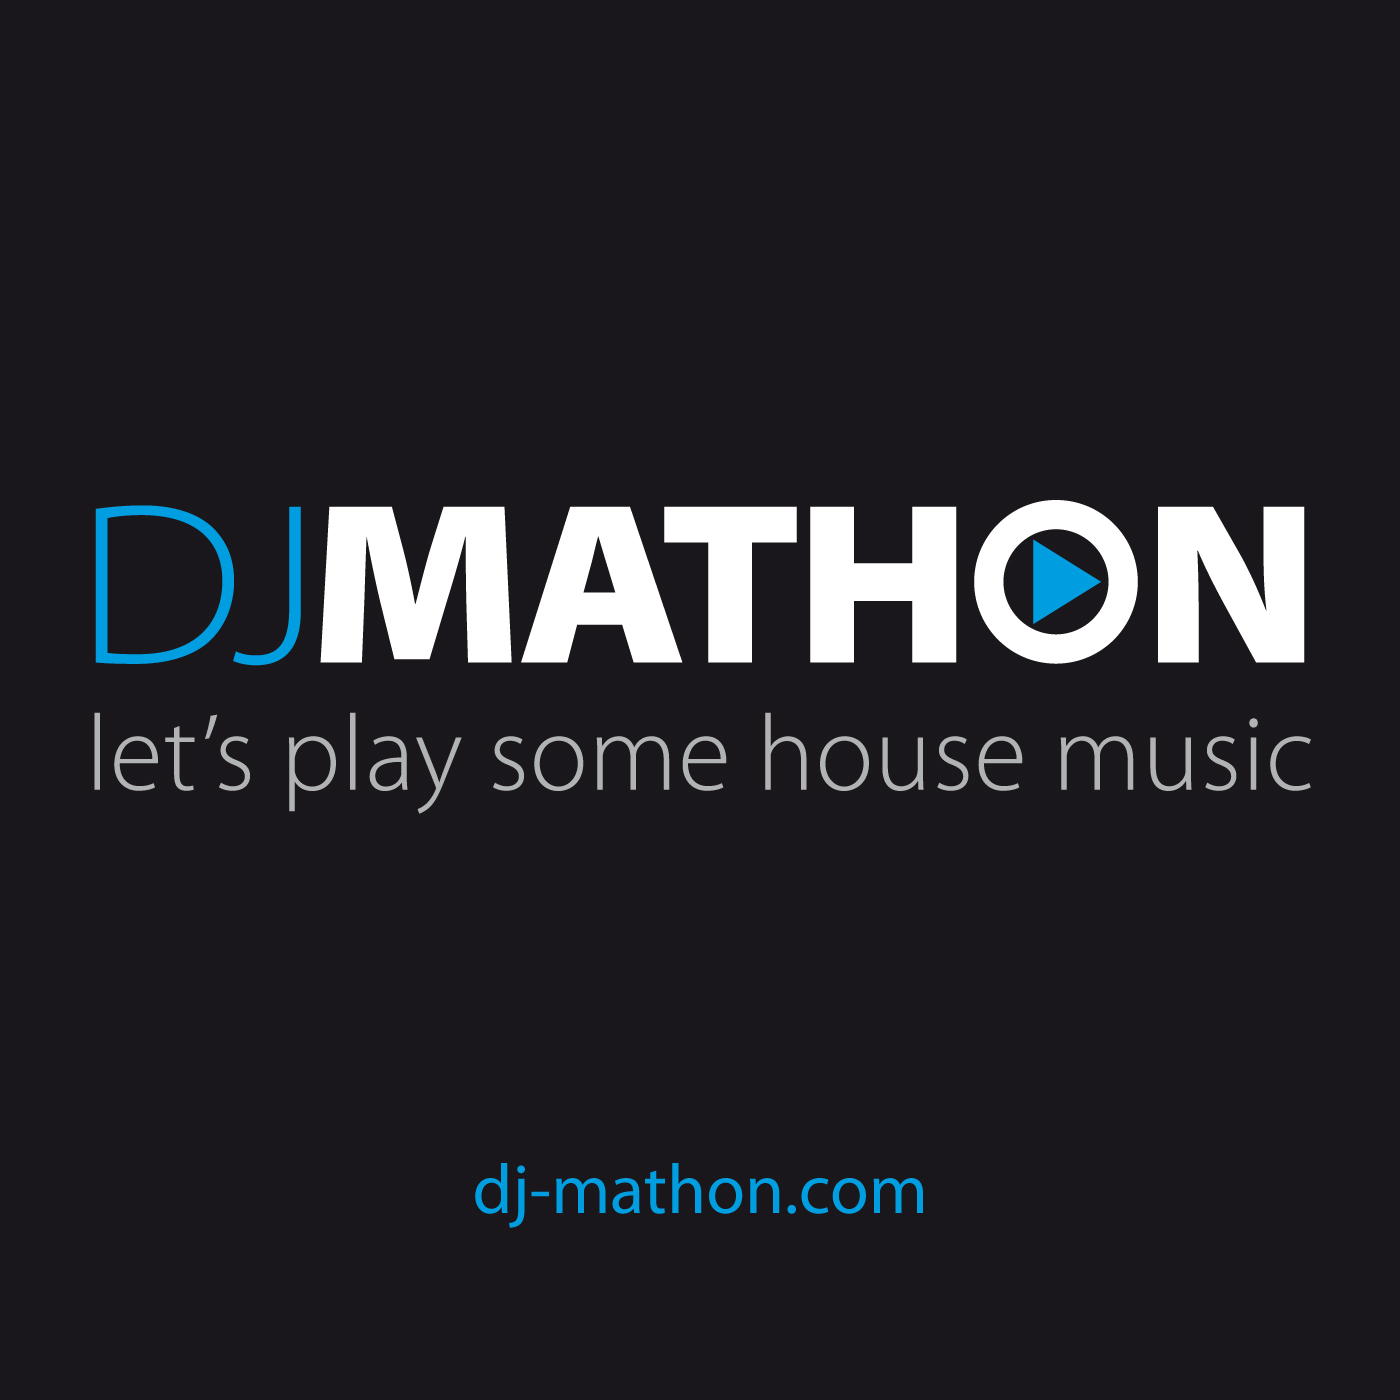 05 DJ MATHON WINTER 2005-2006